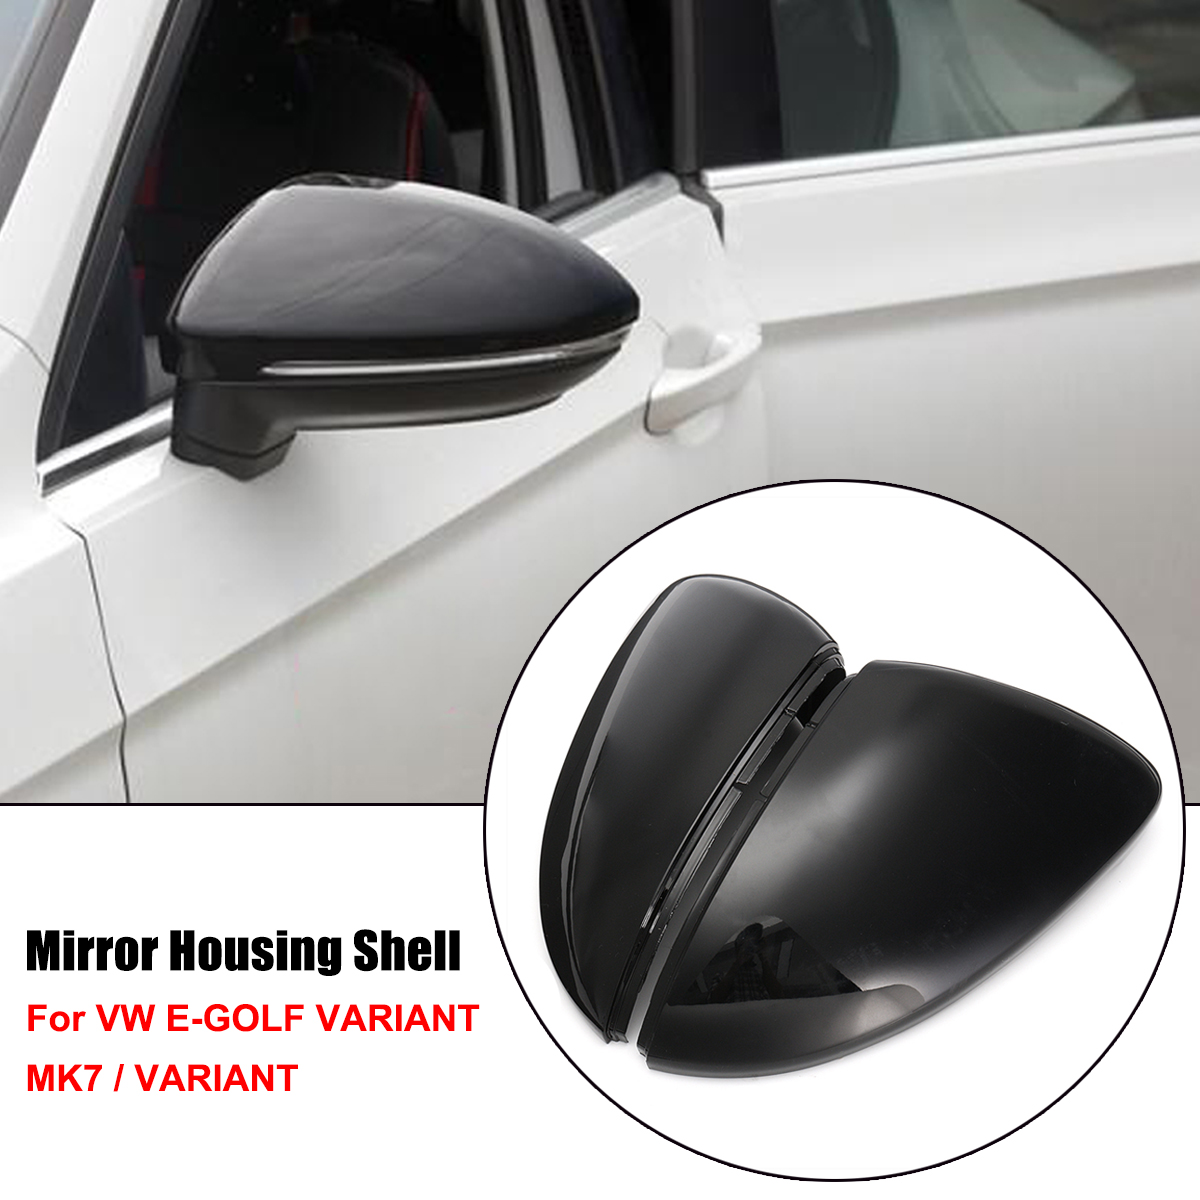 Pair Wing Case Rearview Mirror Cover For VW Golf MK7 Golf Variant E-Golf L+R наклейки hong 50 5 8 4 vw golf mk7 stikers